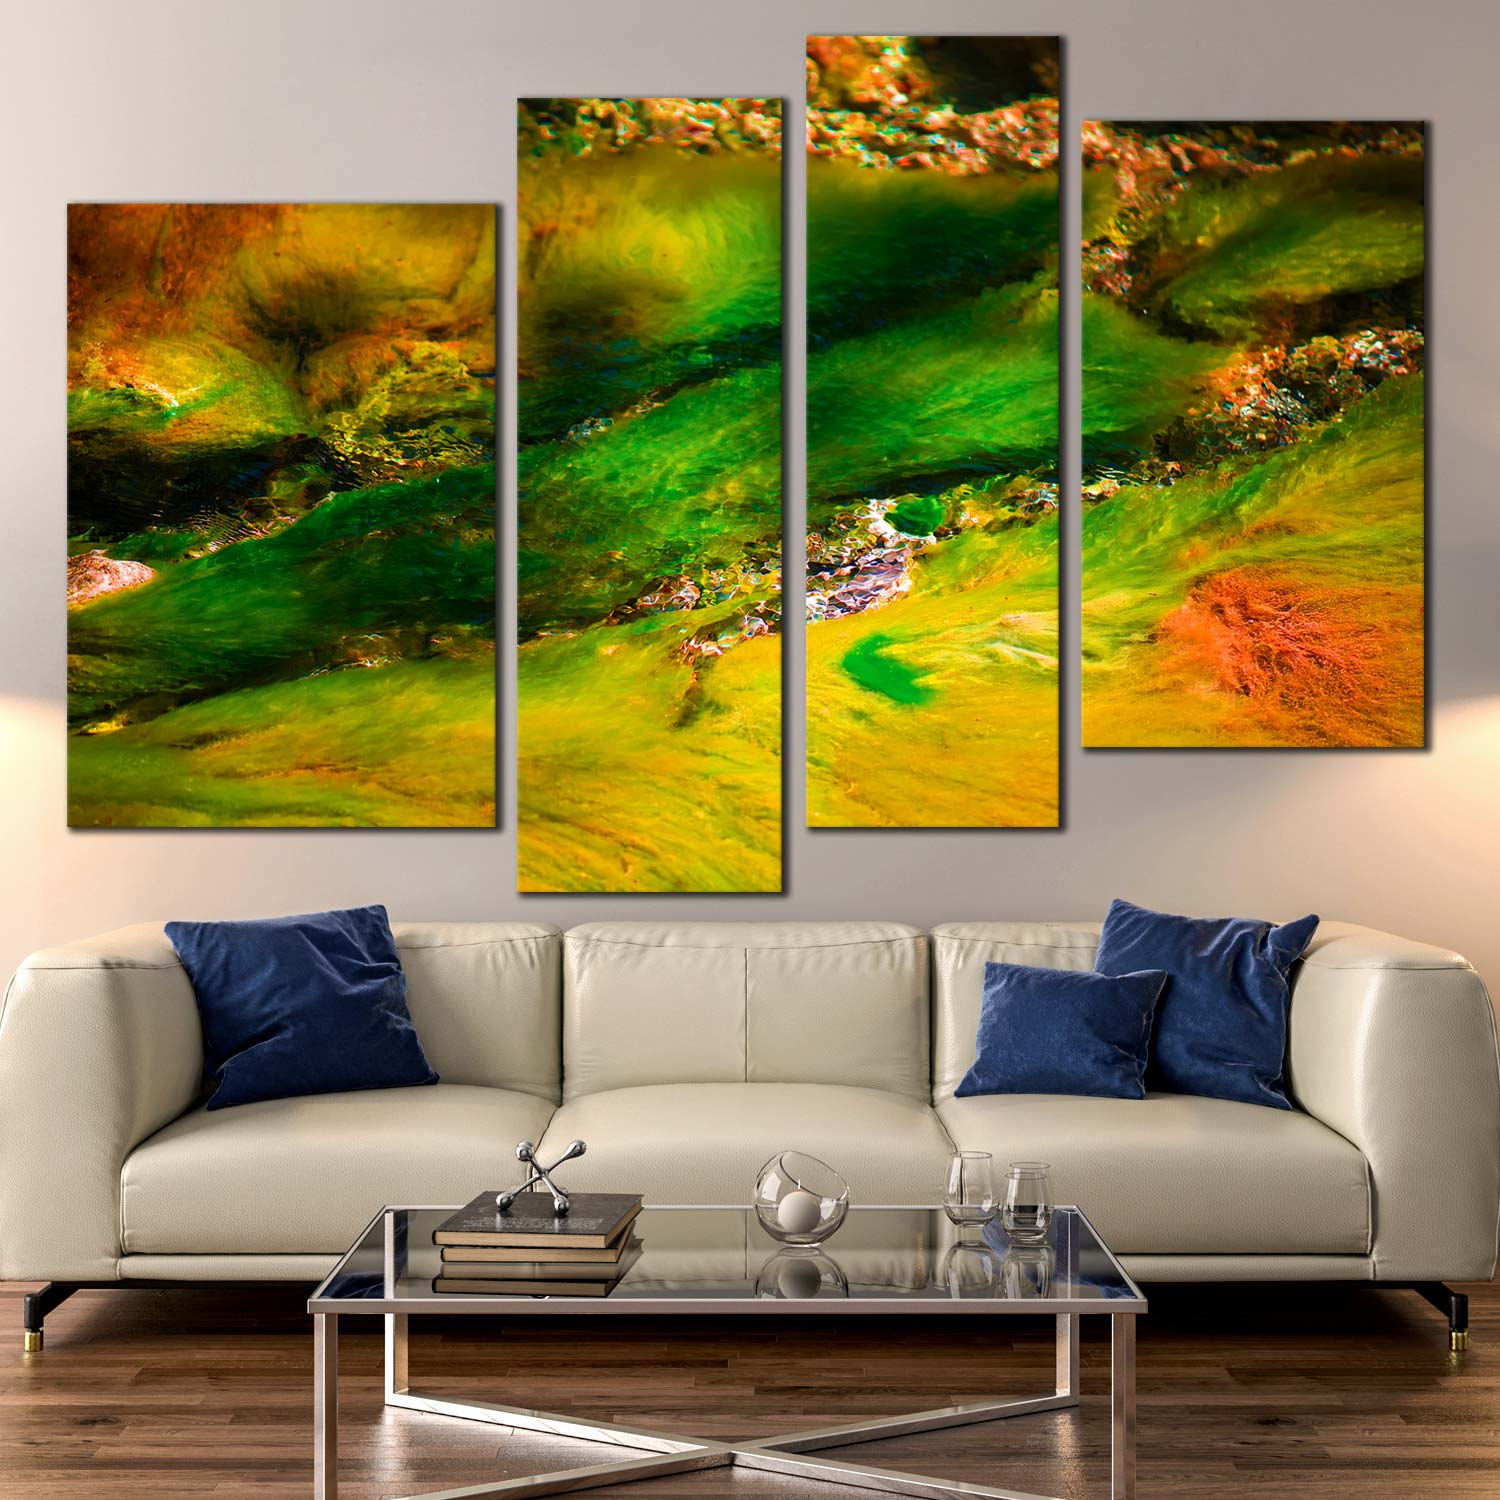 4 Panel Canvas Print Abstract Seabed with Green Brown Yellow Algae ...